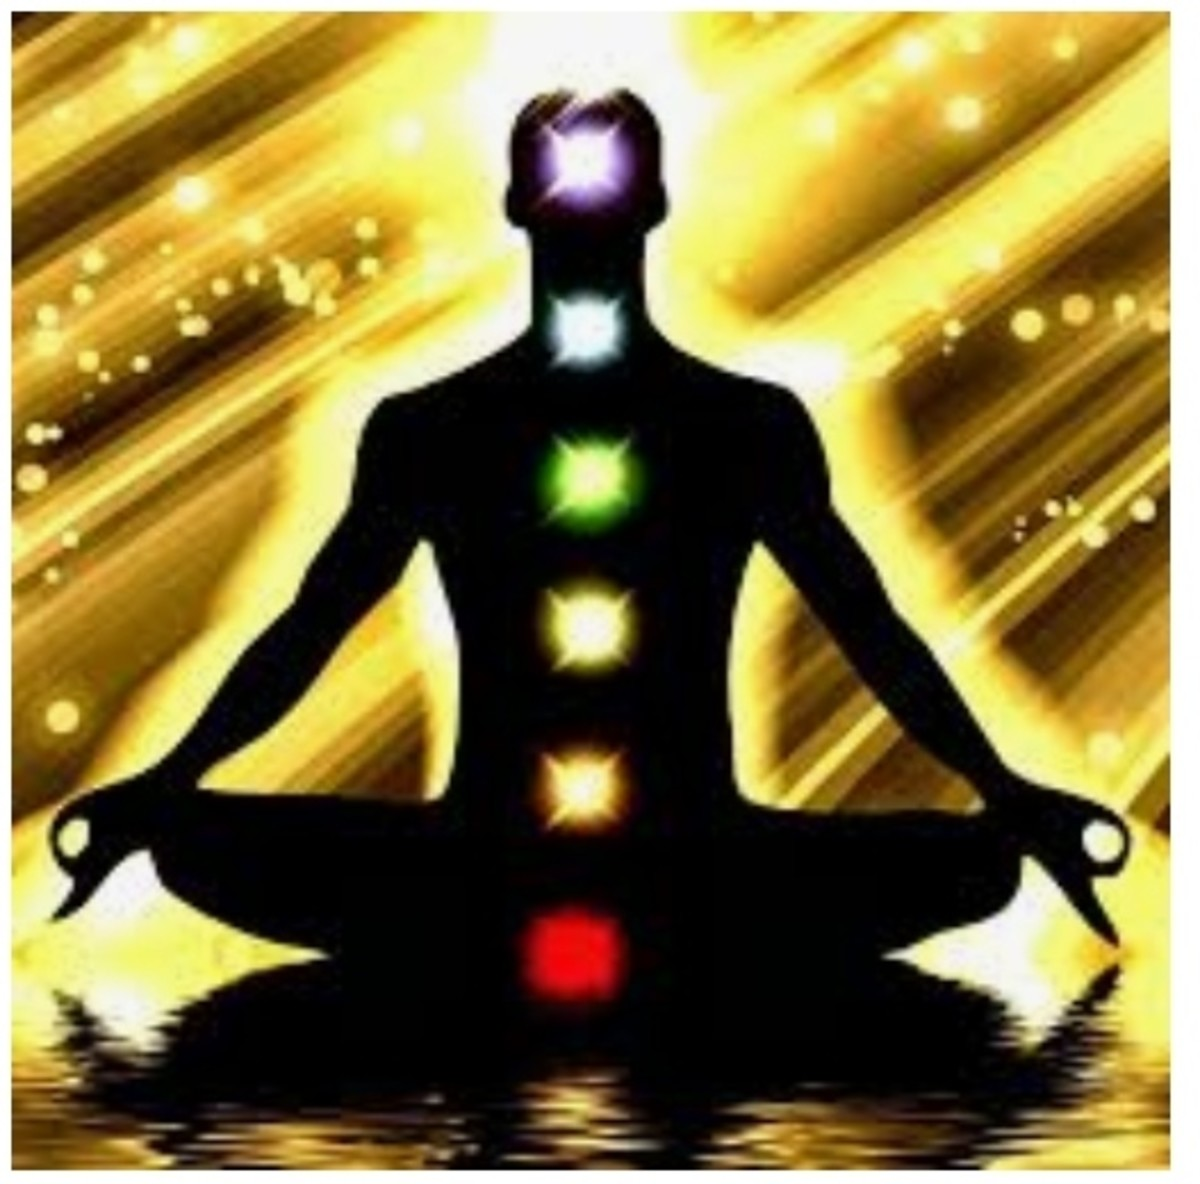 meditate-on-what-you-can-do-and-how-you-can-benefit-from-meditation